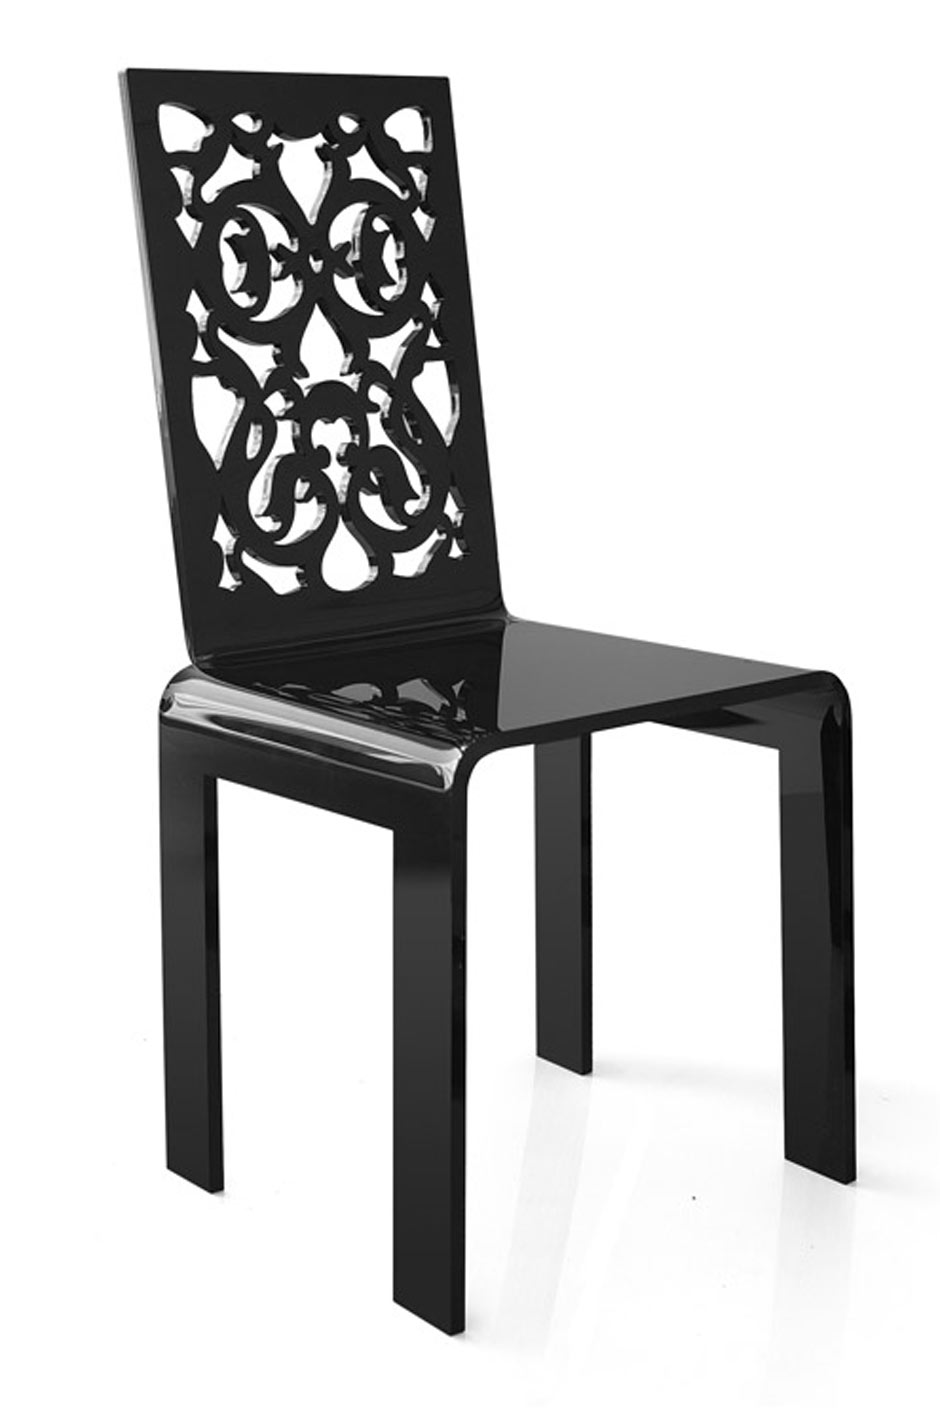 chaise grand soir dentelle noire acrila sp cialiste du plexiglas r f 11030402. Black Bedroom Furniture Sets. Home Design Ideas